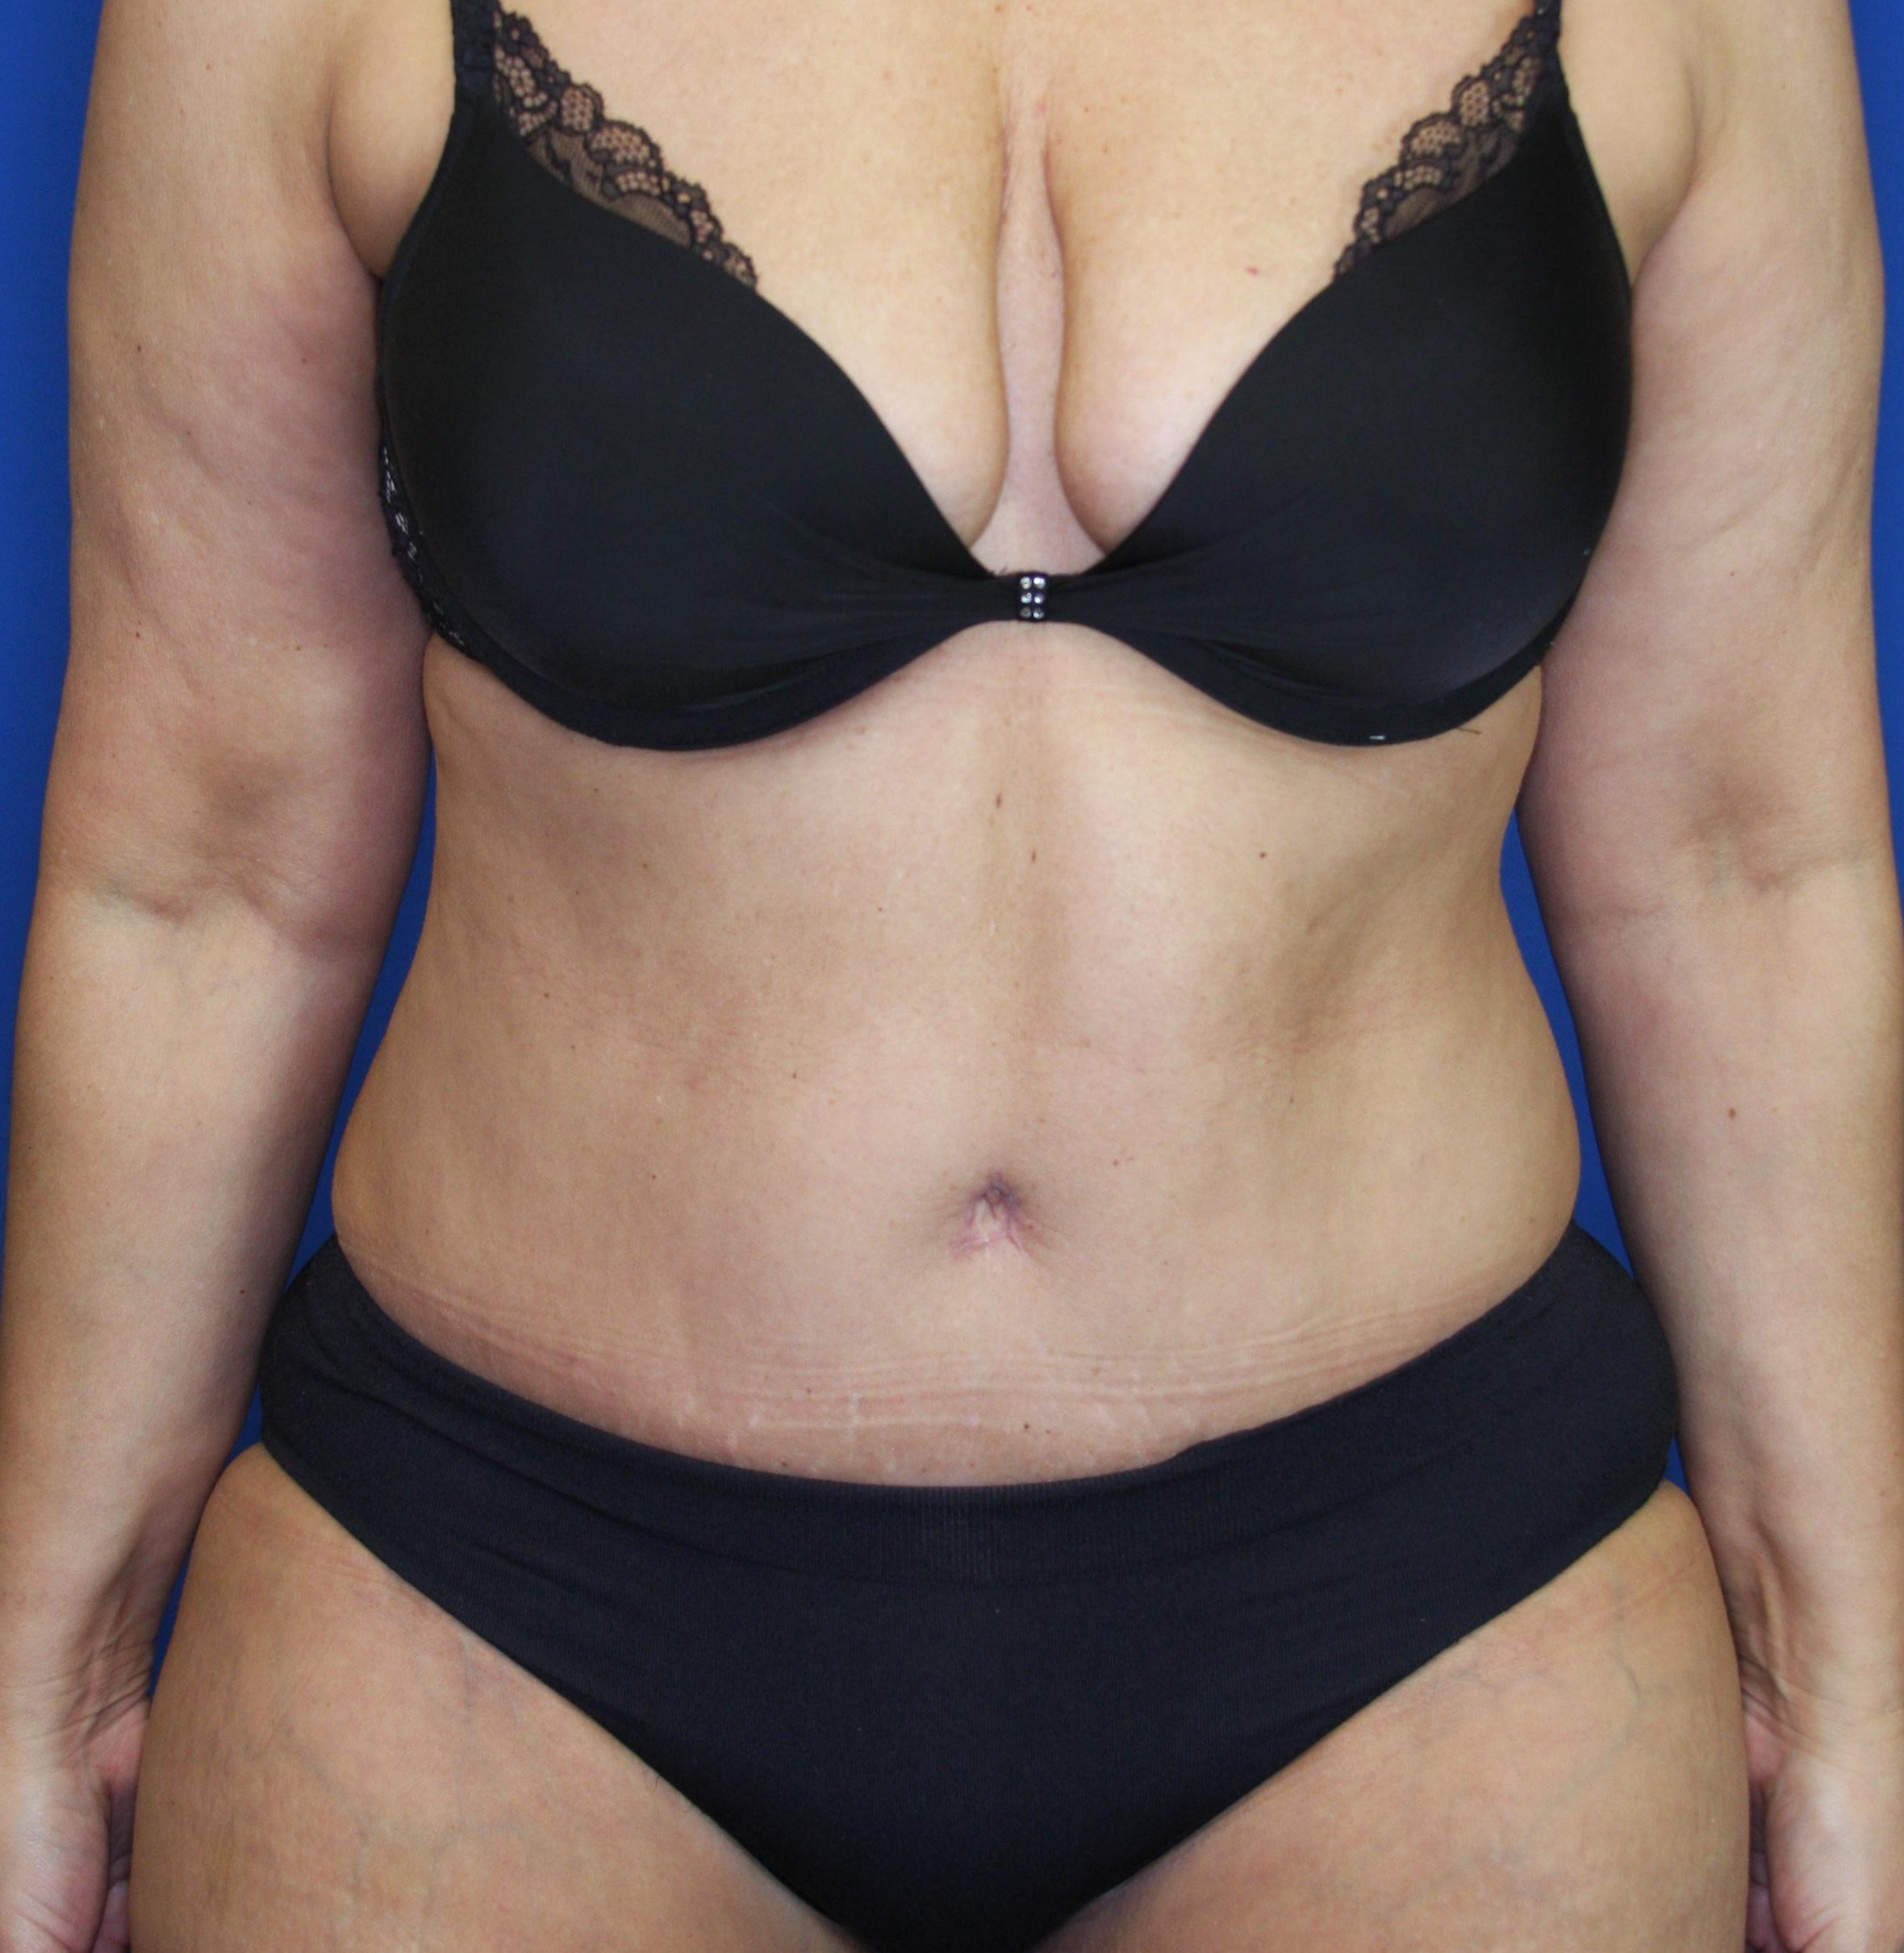 Tummy Tuck in Downers Grove,IL 6 weeks postop